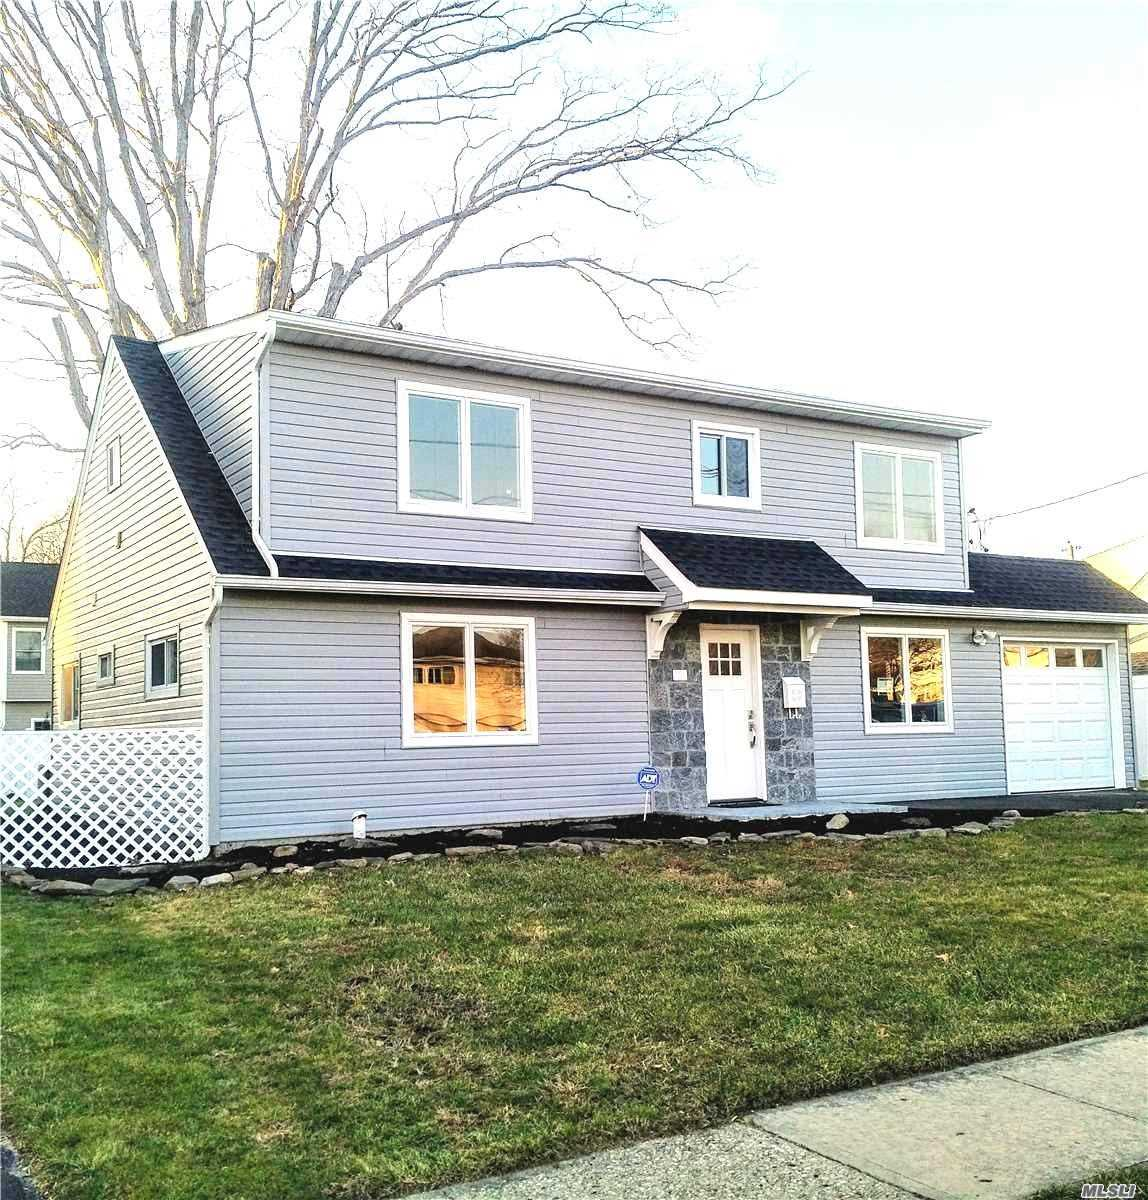 Newly Dormered And Fully Renovated 4 Bedroom, 2 Full Bath Colonial In Much Desired Massap Sd #23. New Boiler, Hi Eff Gas Heating & Cac, 1 Car Garage, Huge Eik, Fdr, 2 Poss Mbr's, Ovrszd Backyard, 220 Amp Elec, & Many Green Features...Adjacent To Beautiful Park , Only 1/2 Mile From Lirr. Only 6 Blocks South Of Sunrise Hwy, And North Of Merrick Rd.. Ready To Be Home Before Spring?! Hurry!!